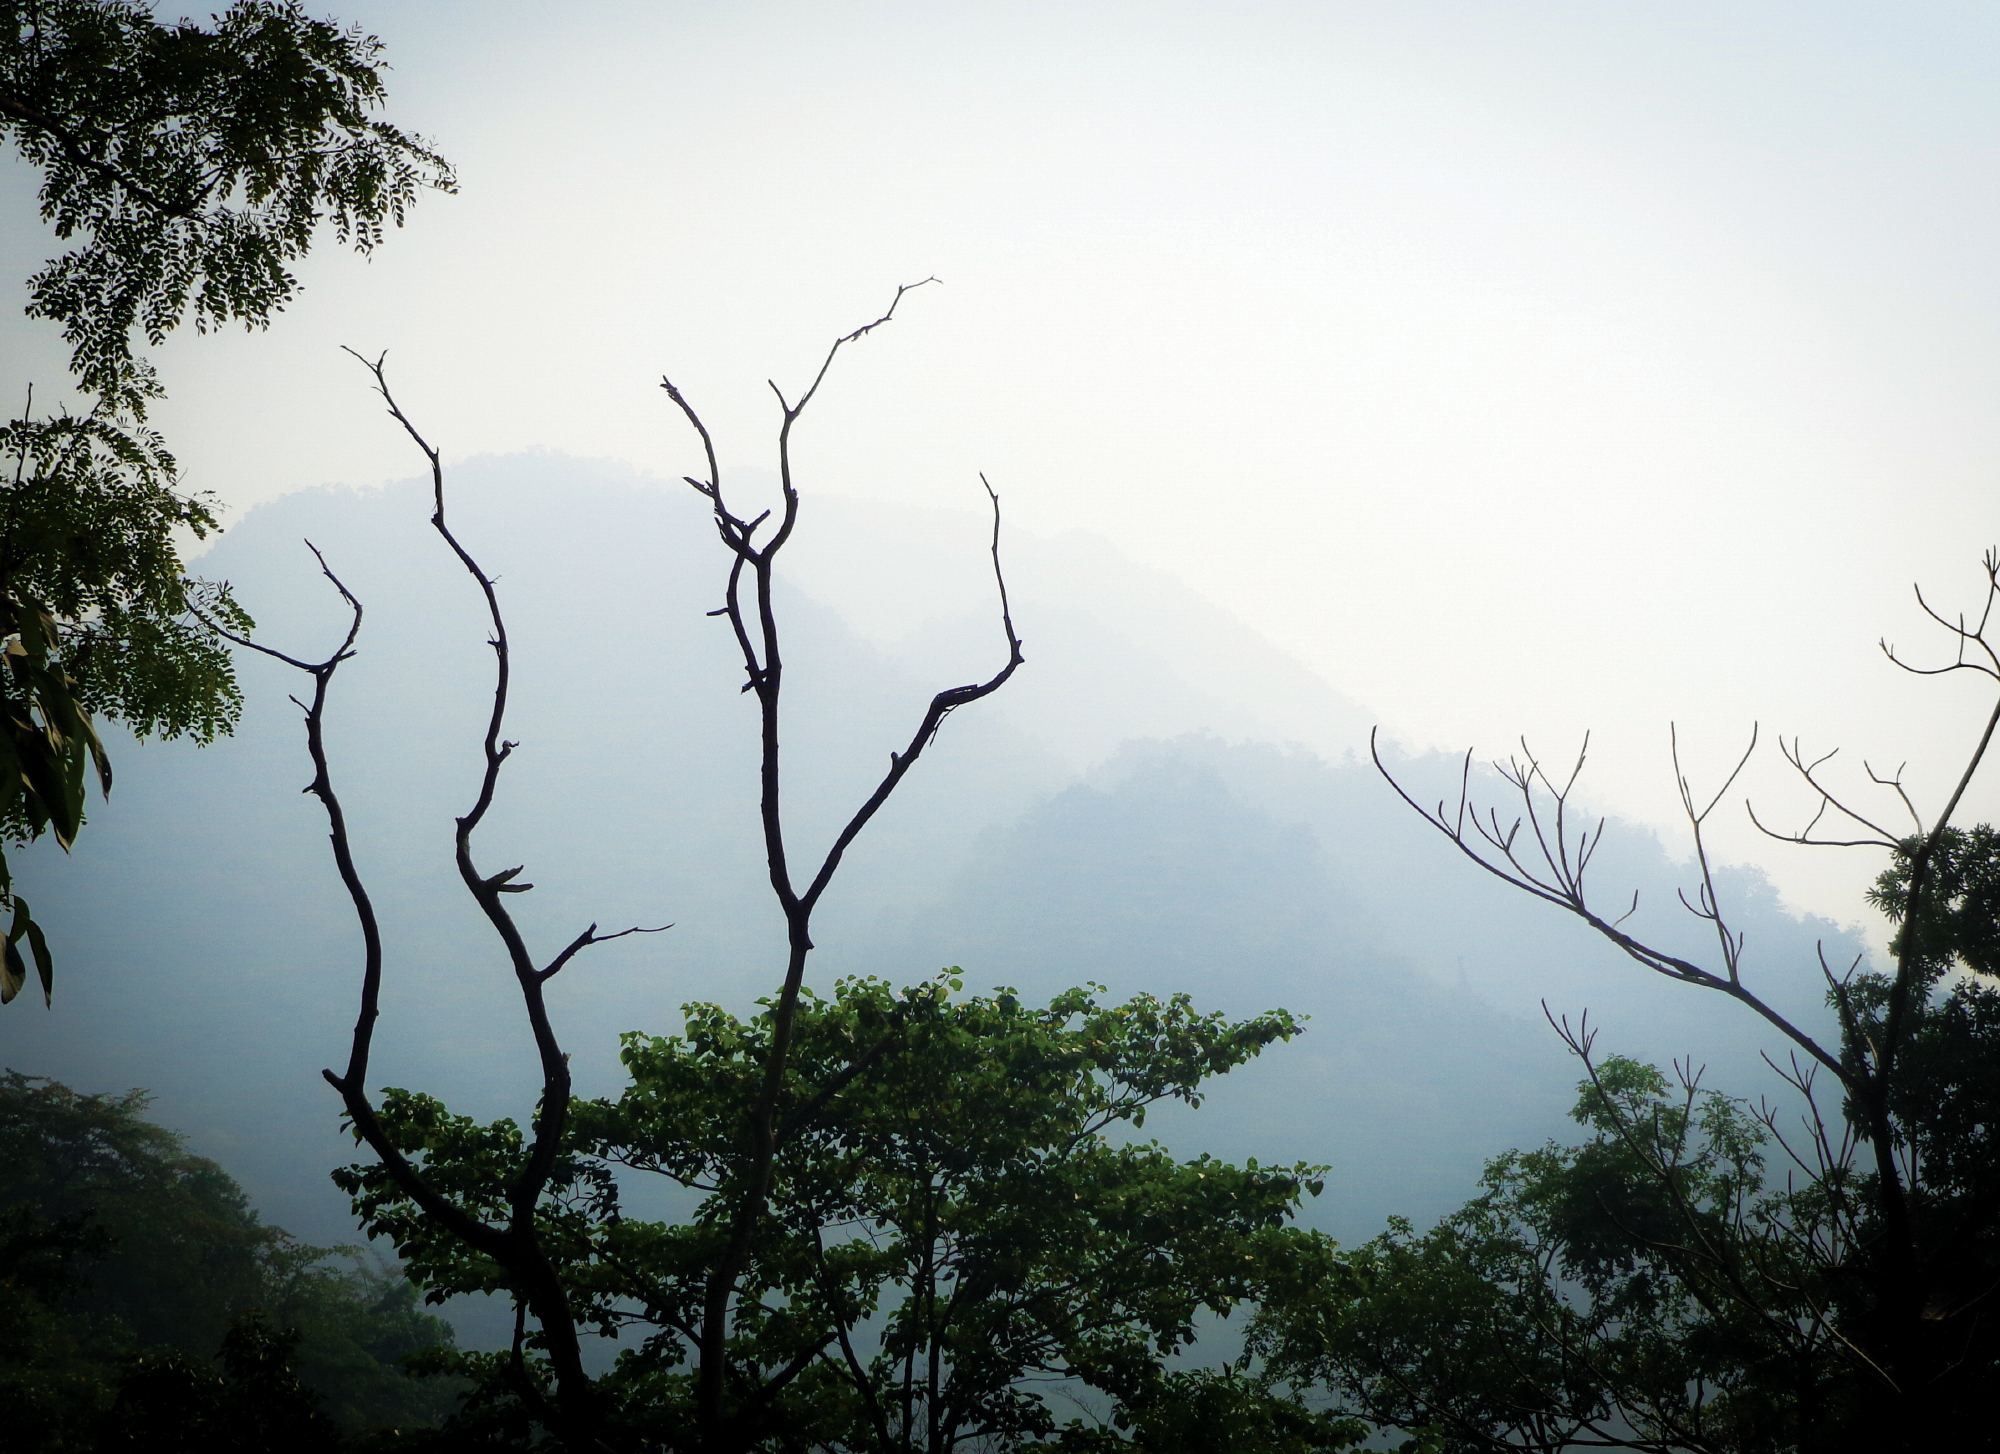 Photograph of trees in the foreground and mountains as far as the eye can see off in the distance. Taken in Rishikesh, India.